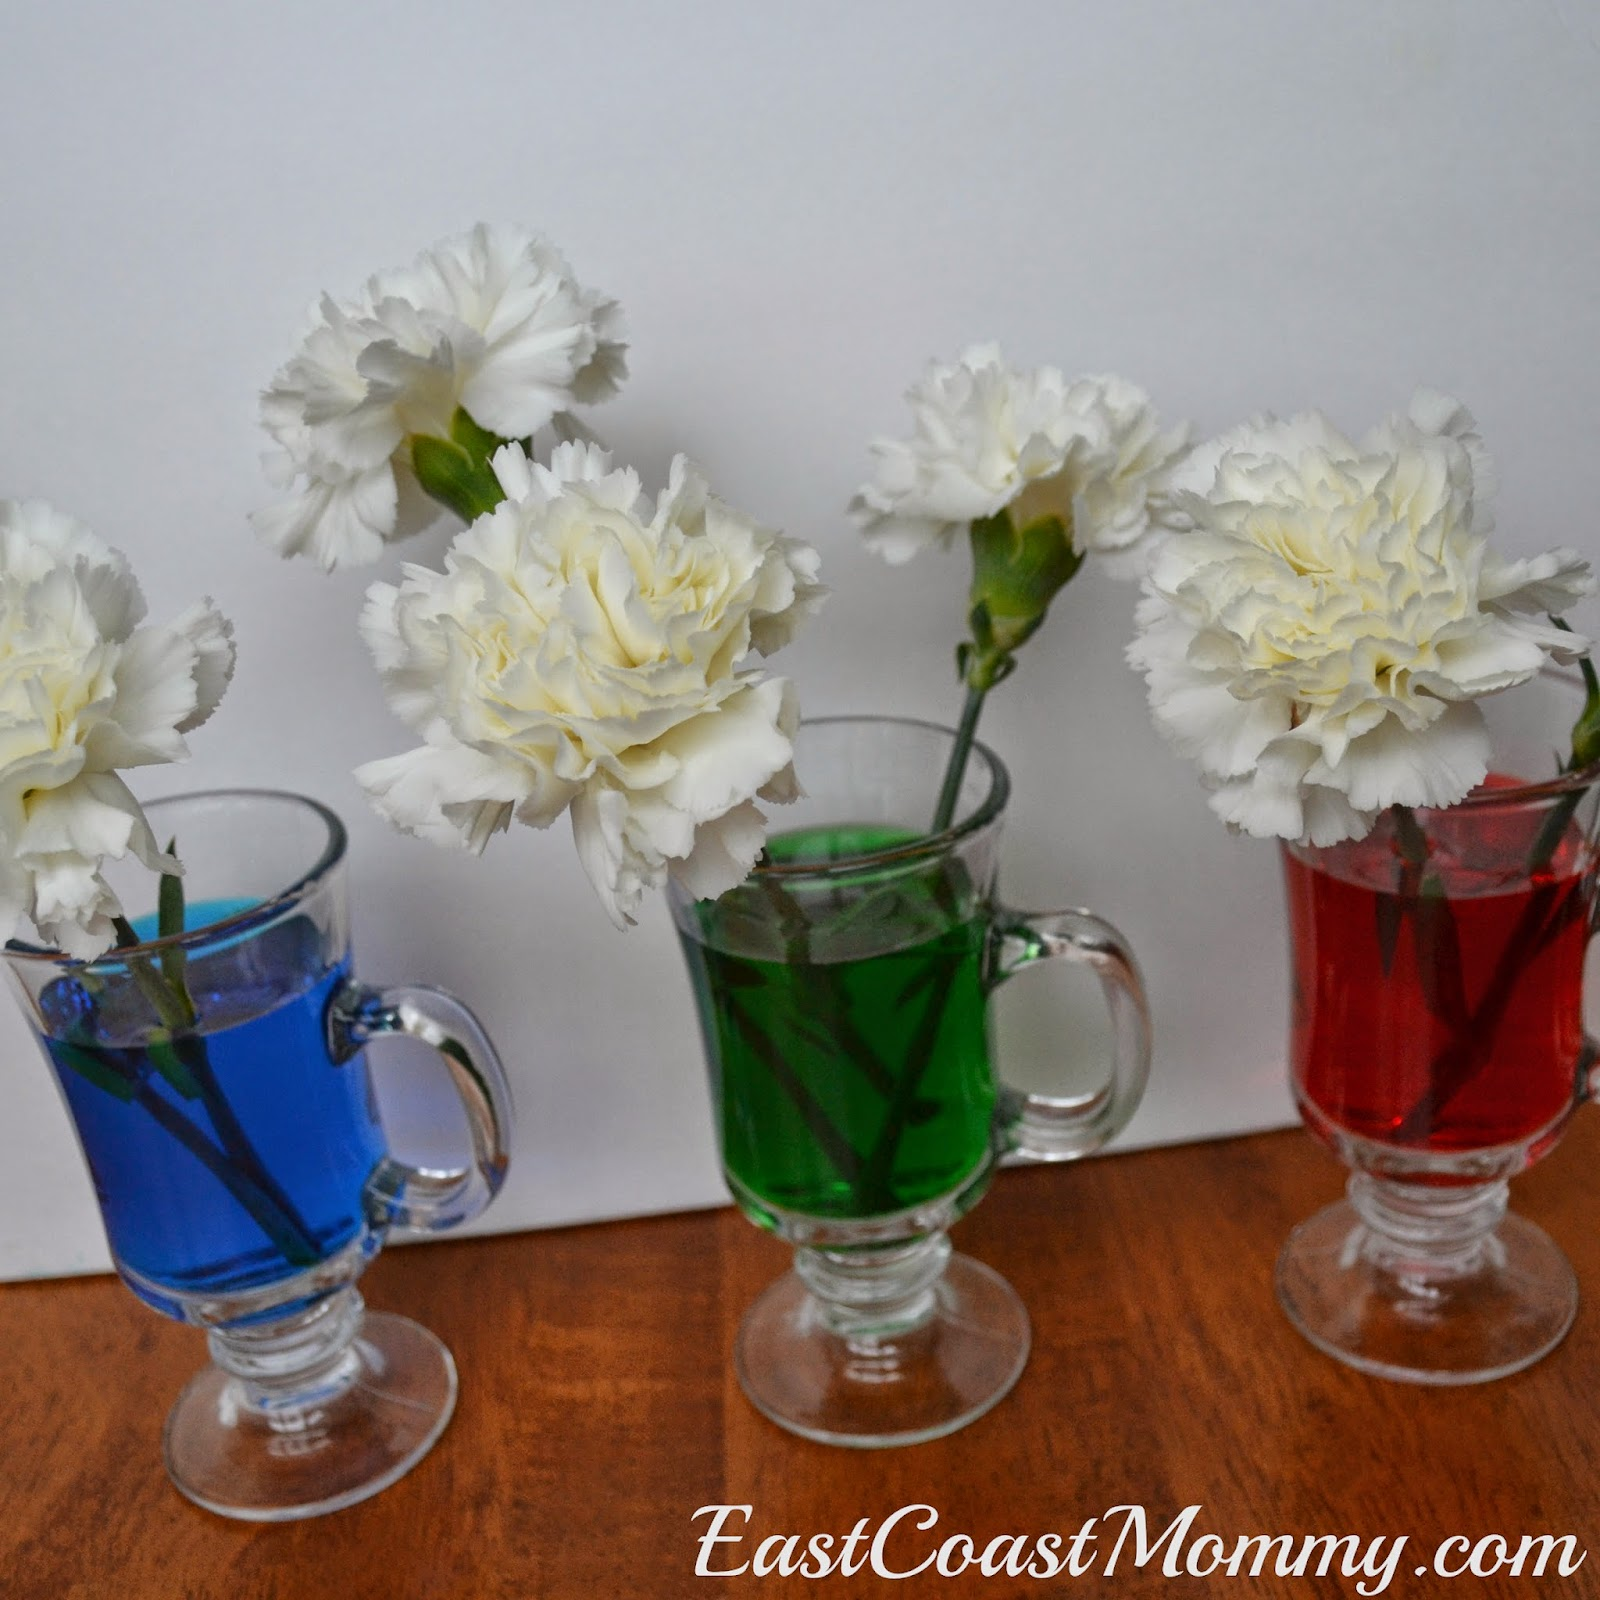 East Coast Mommy: March Break Science Fun {Color Changing Carnations}